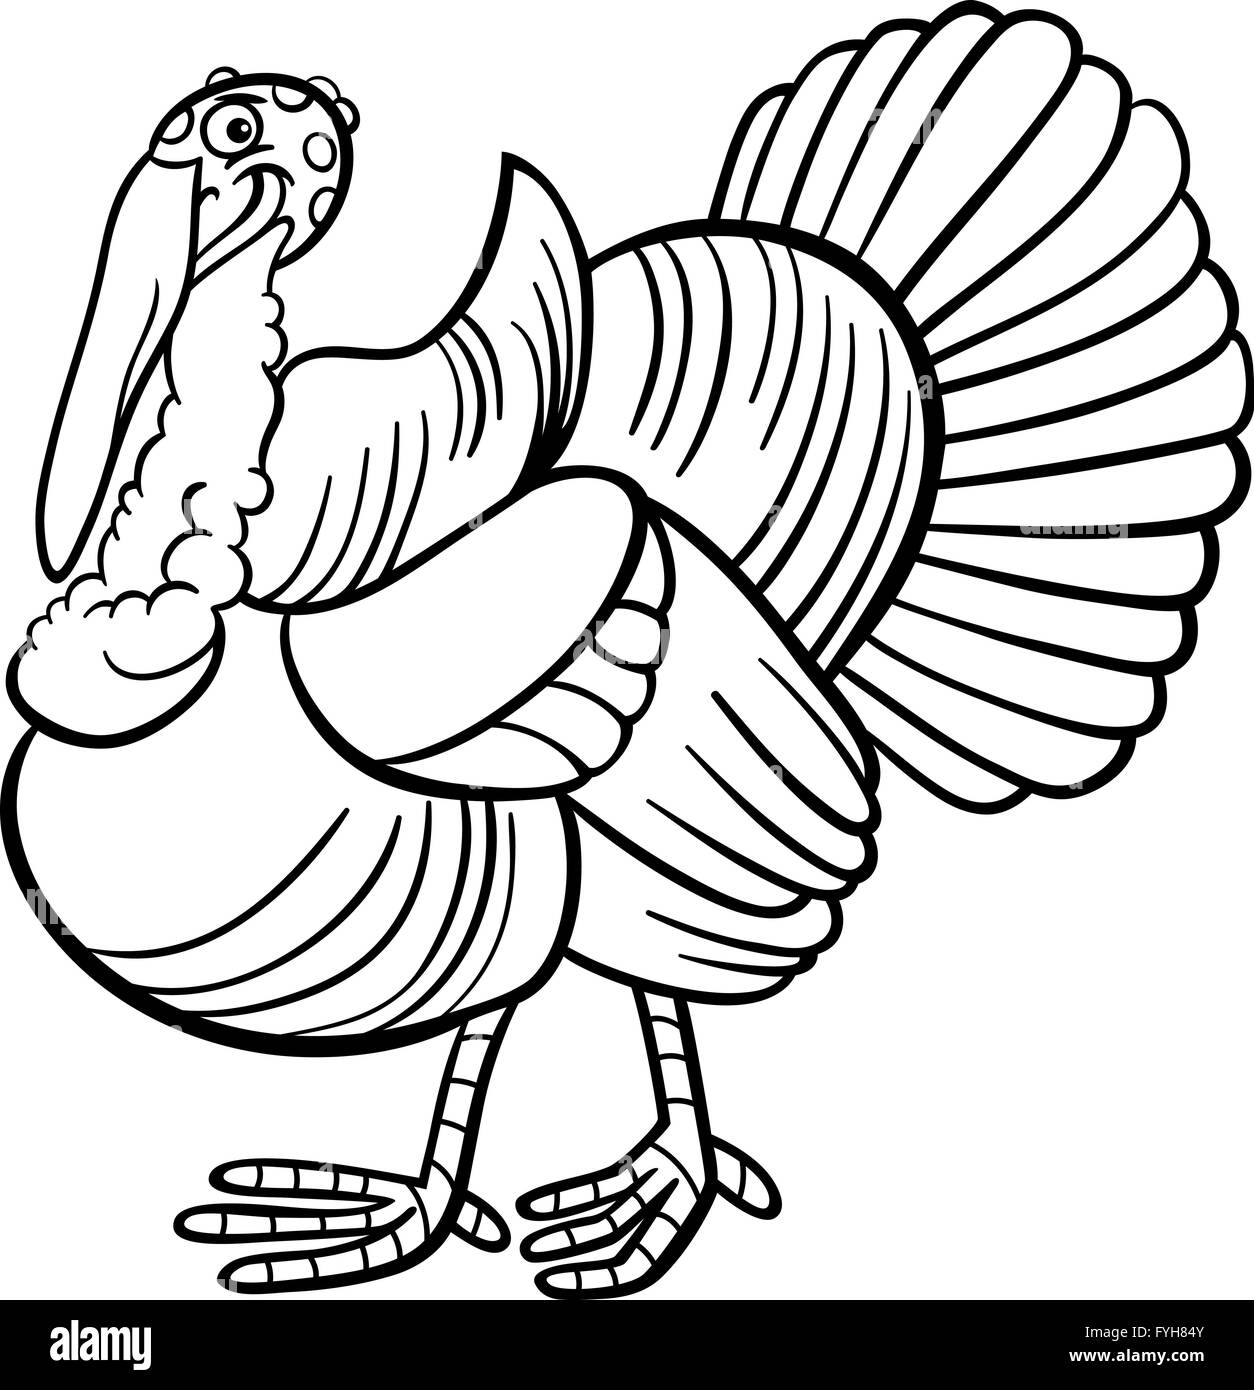 Turkey Cartoon Stockfotos & Turkey Cartoon Bilder - Alamy